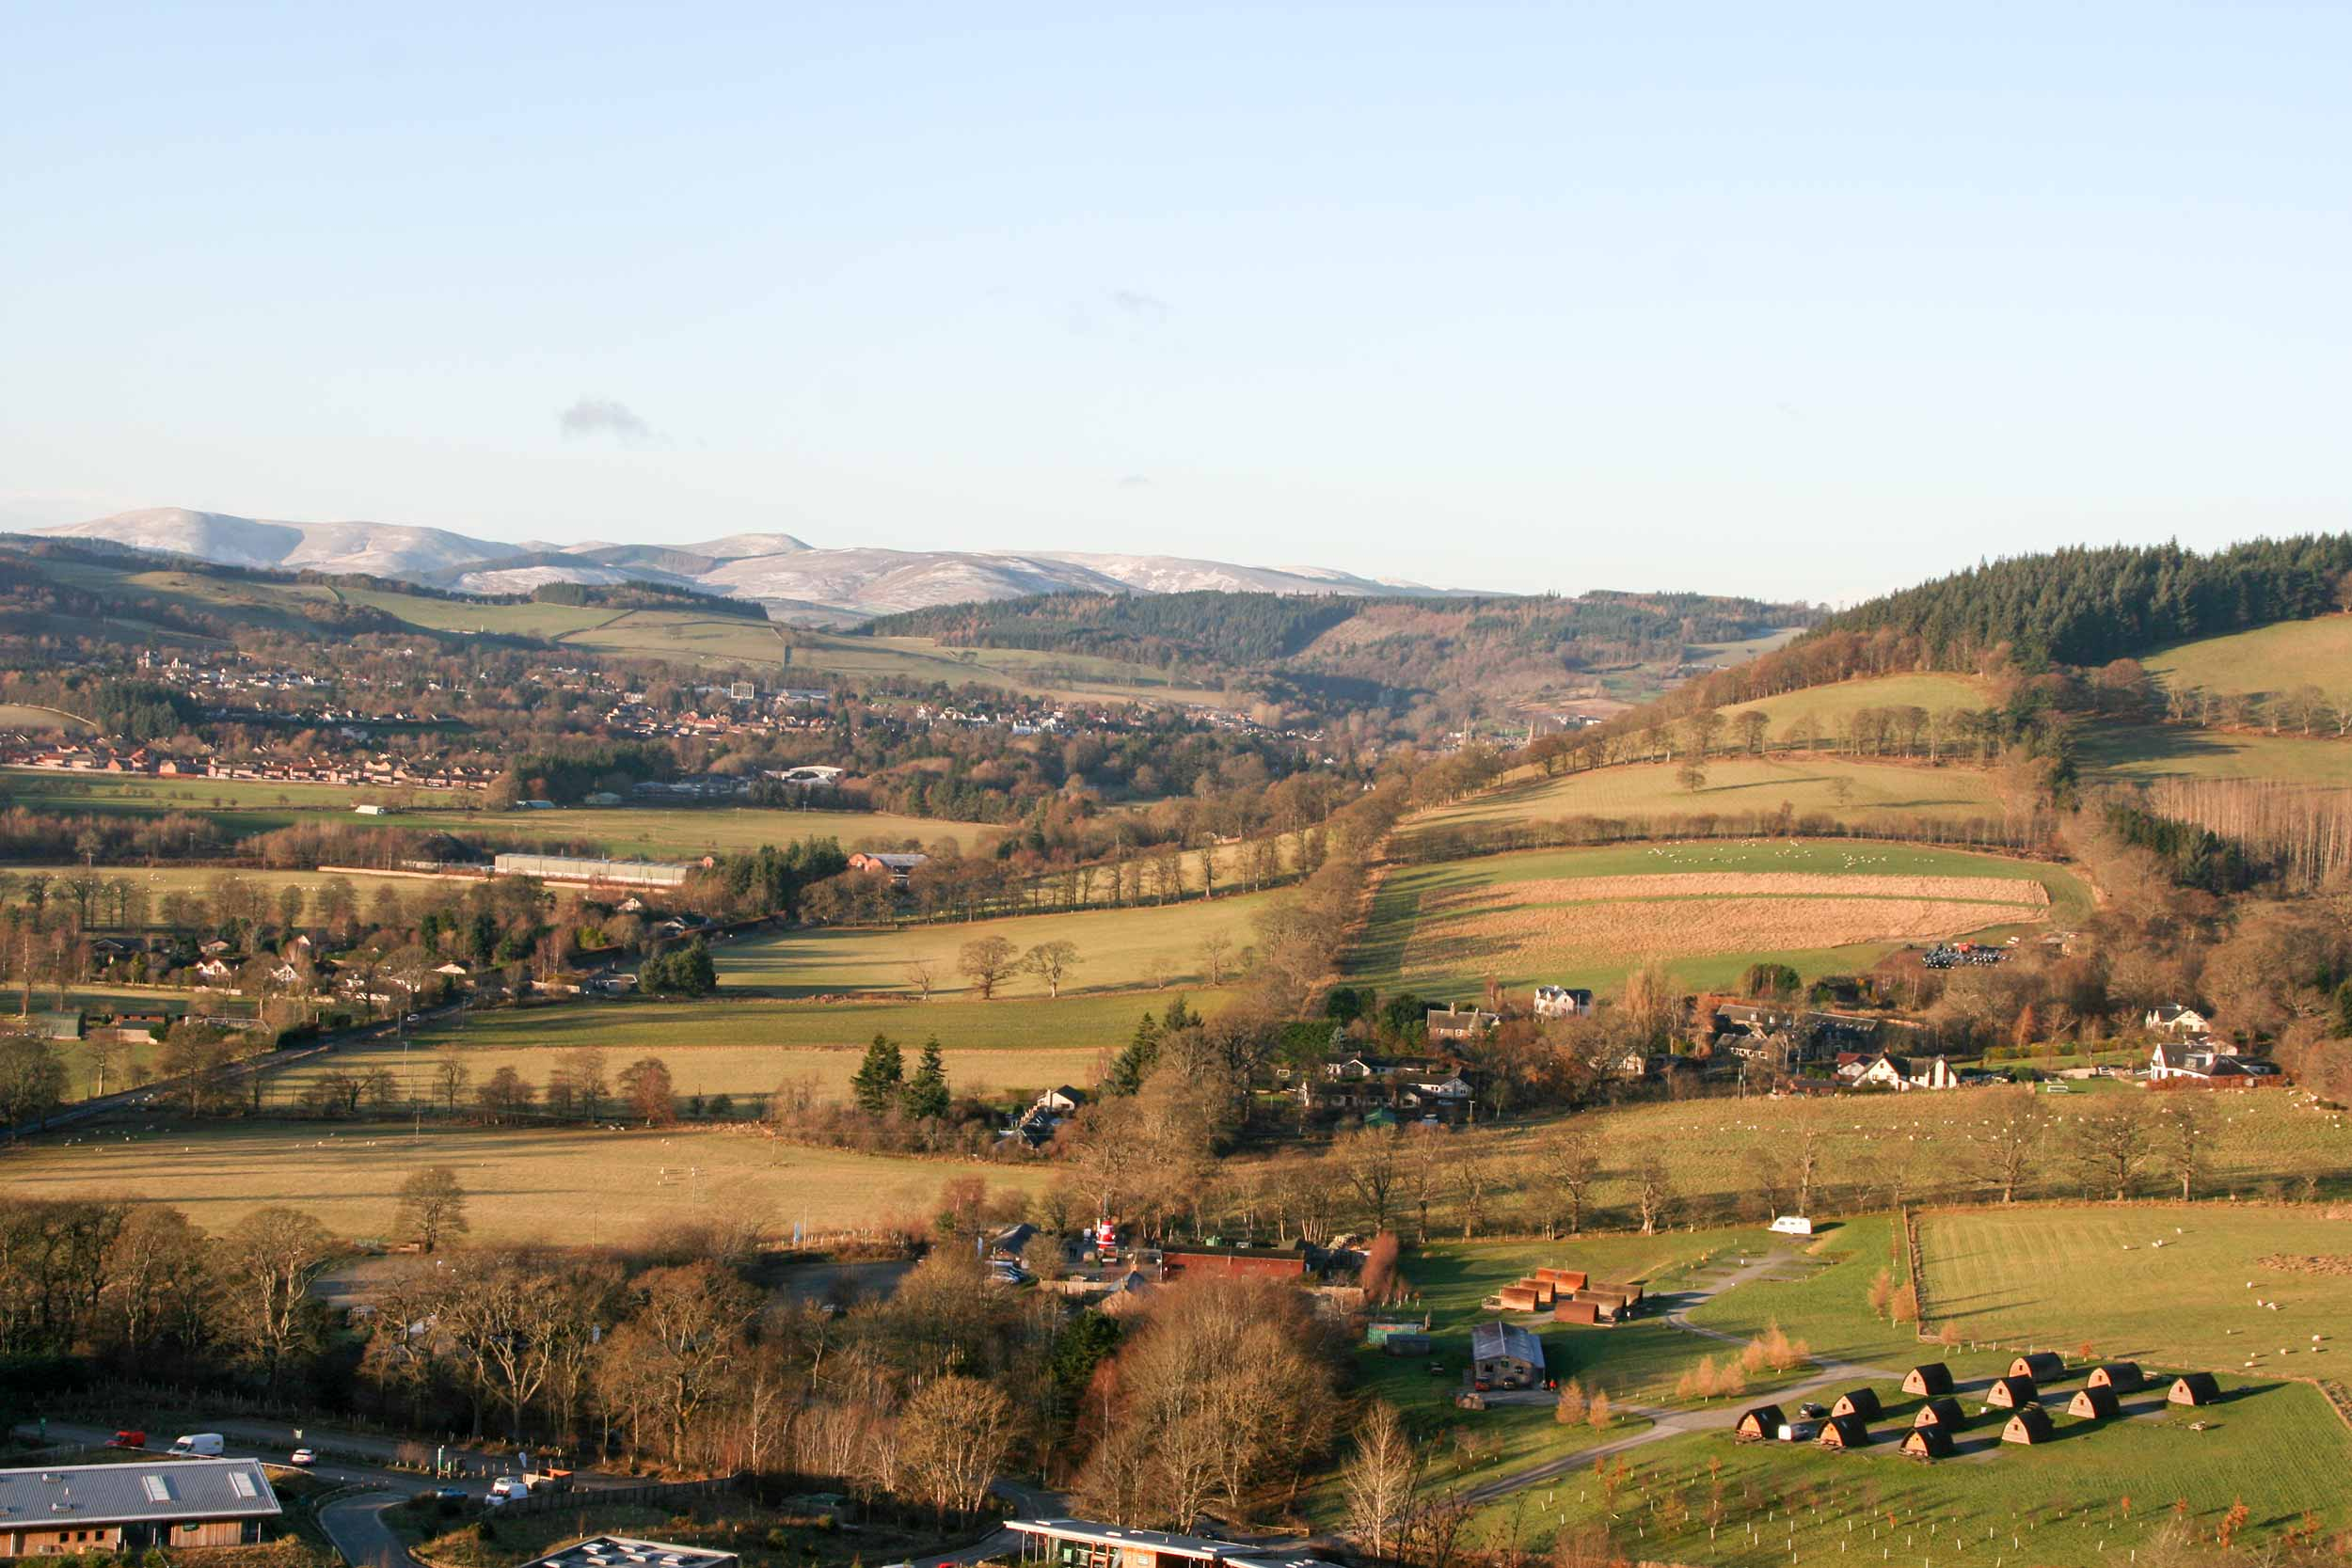 Just a few miles outside the beautiful Scottish Borders town of Peebles